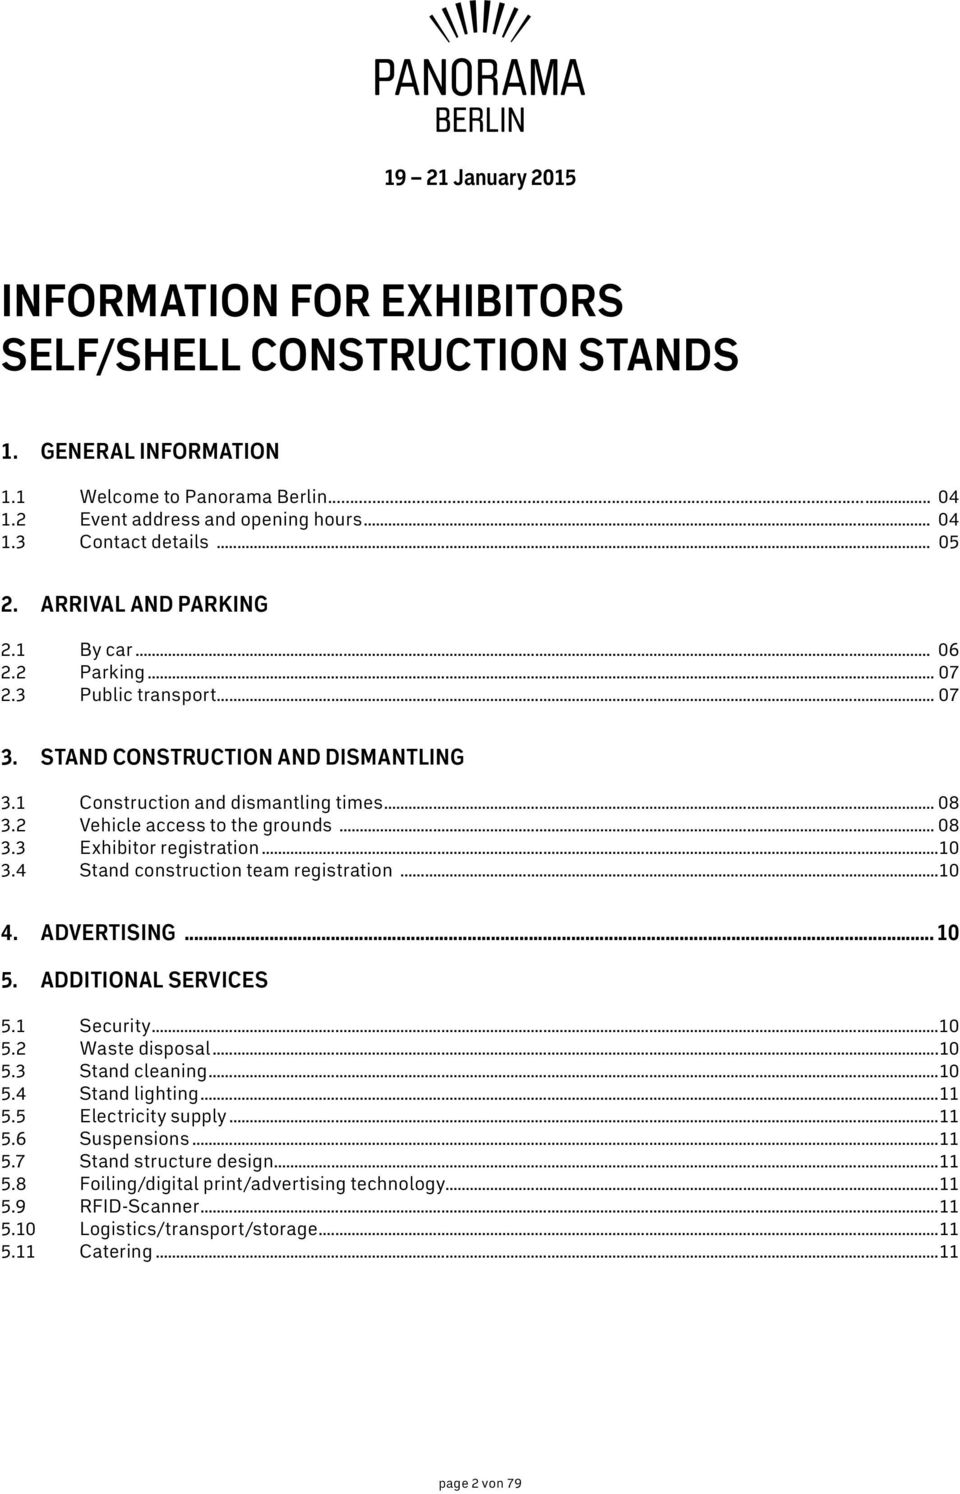 .. 08 3.3 Exhibitor registration...10 3.4 Stand construction team registration...10 4. ADVERTISING... 10 5. ADDITIONAL SERVICES 5.1 Security...10 5.2 Waste disposal...10 5.3 Stand cleaning...10 5.4 Stand lighting.